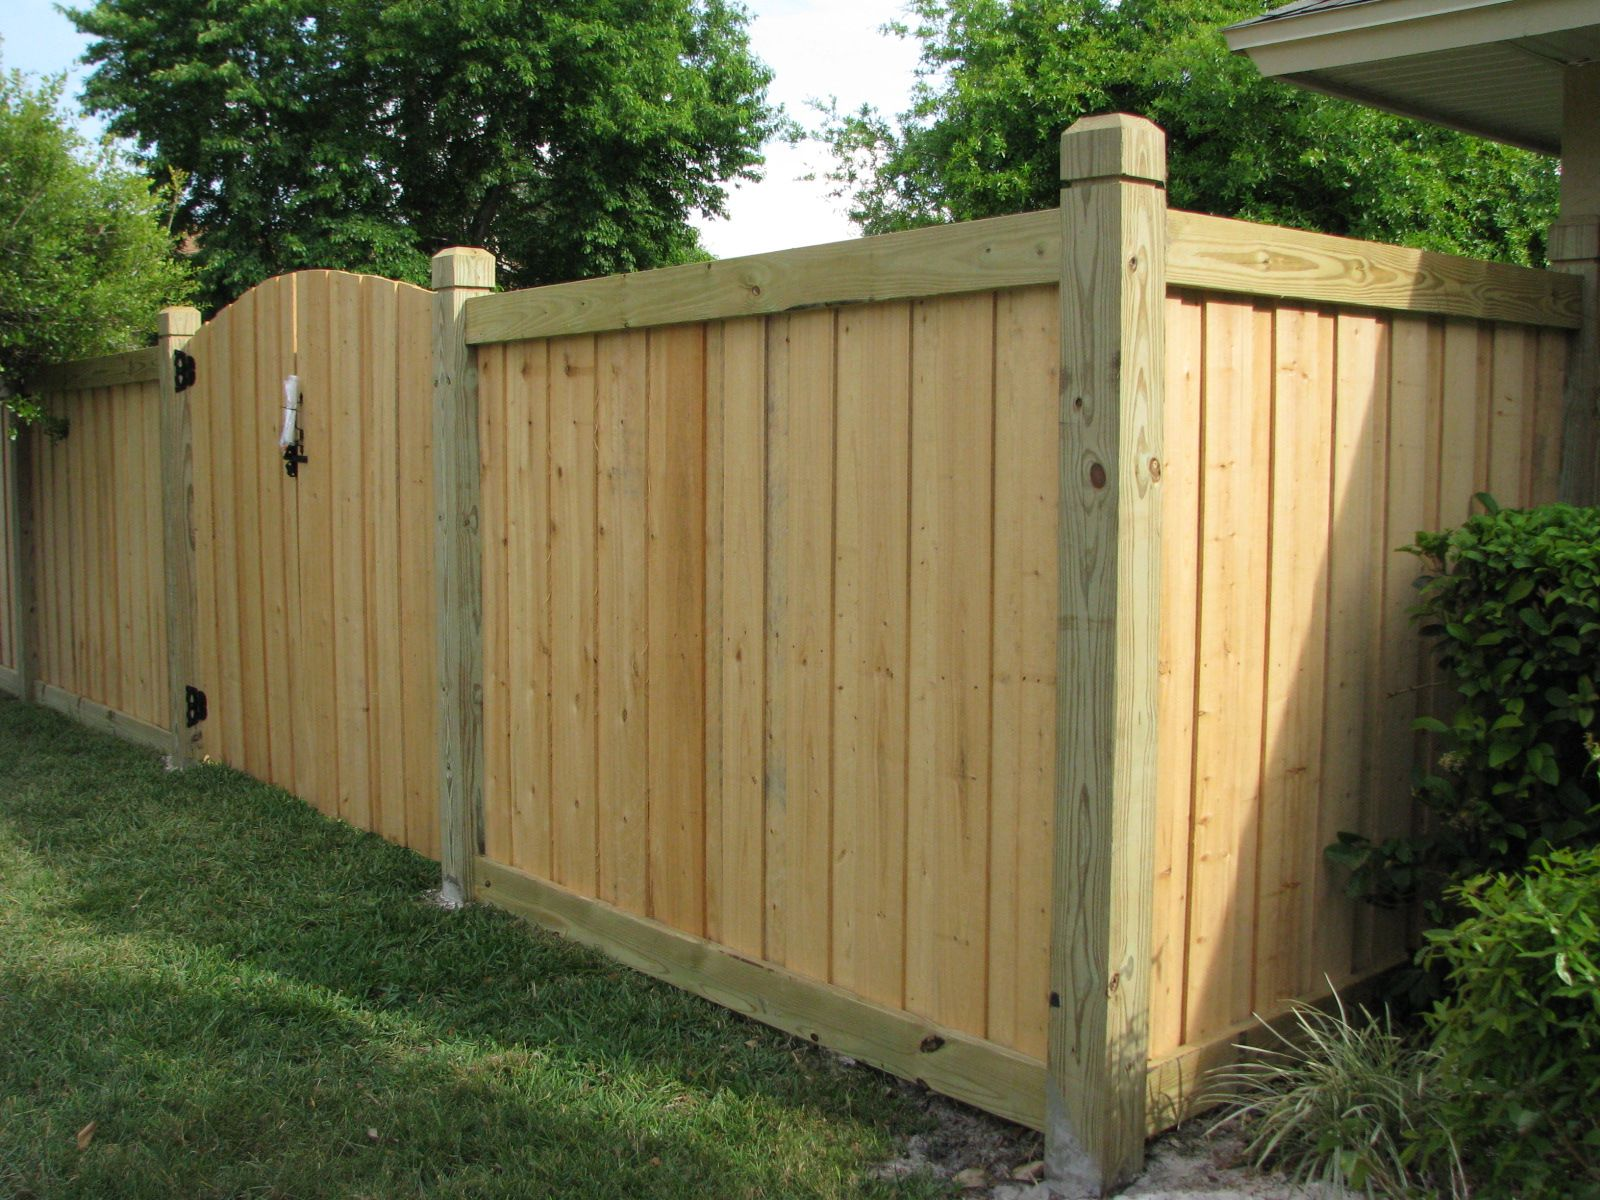 Beautiful new capped wood fence & gate design by Mossy Oak Fence